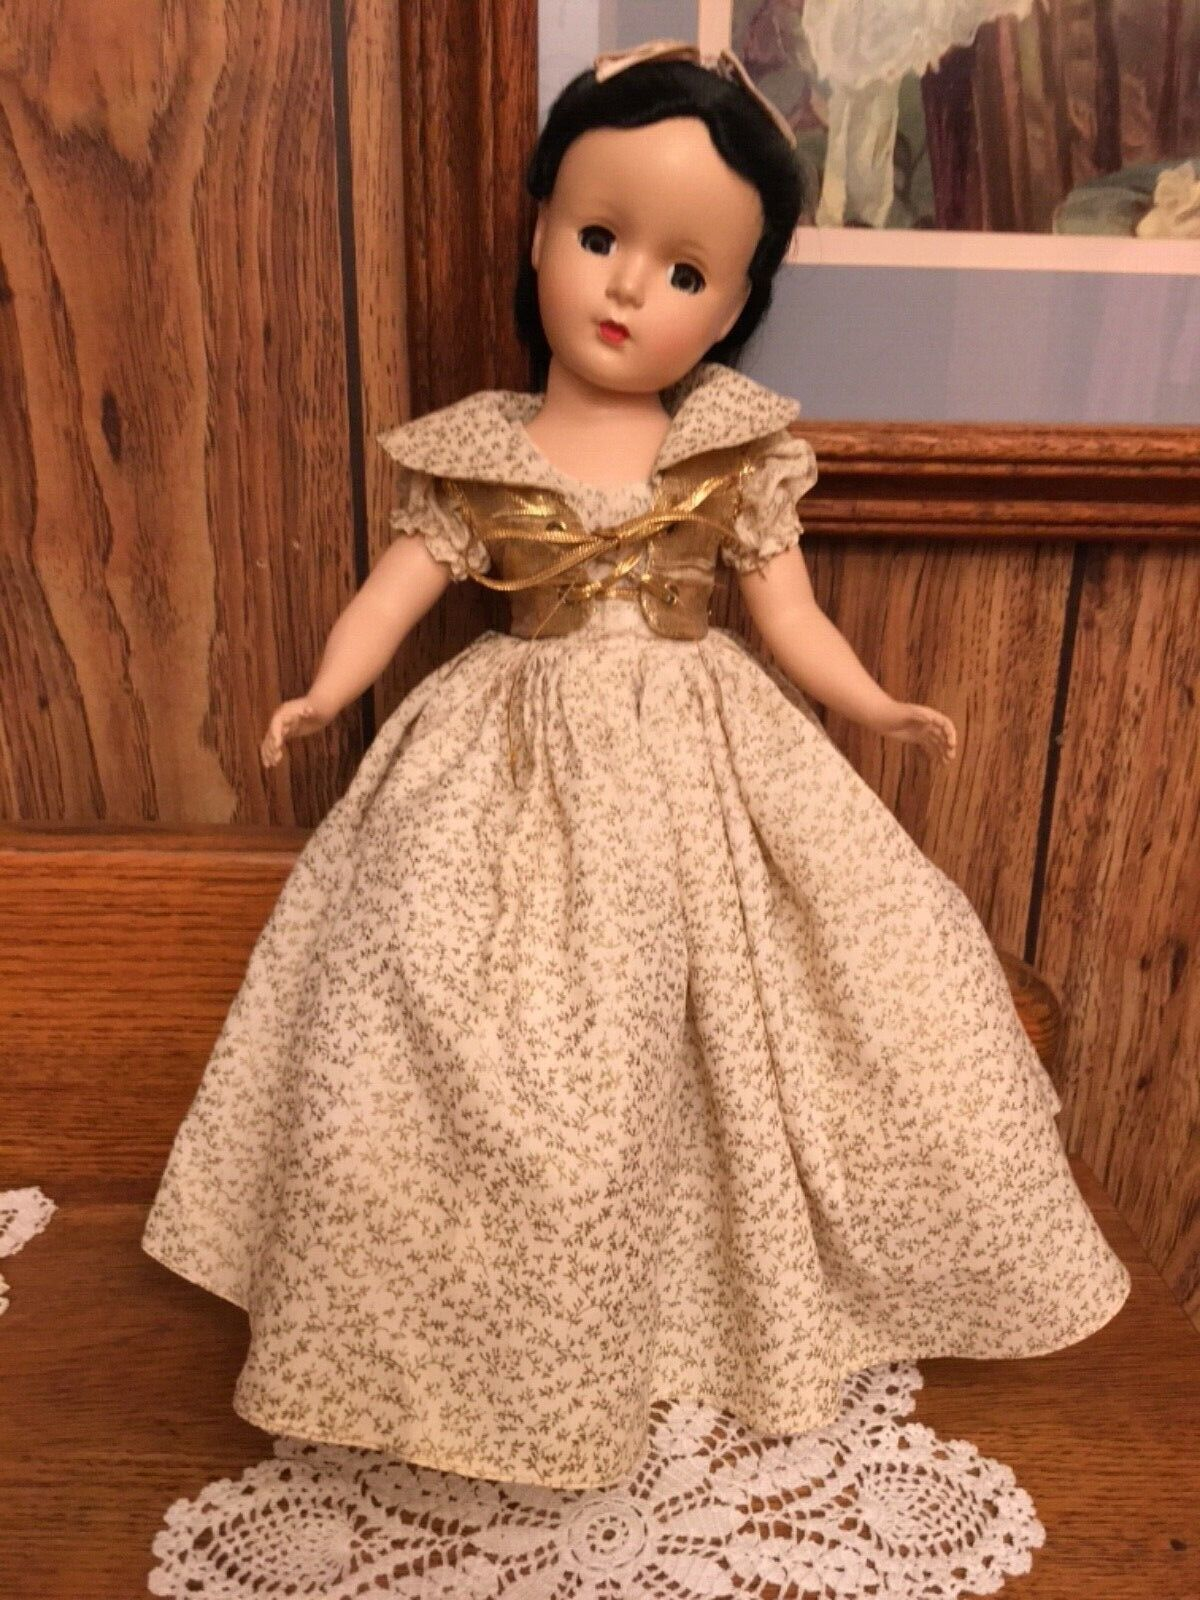 VINTAGE MADAME ALEXANDER 14 HARD PLASTIC SNOW WHITE IN ORIGINAL OUTFIT - $224.50